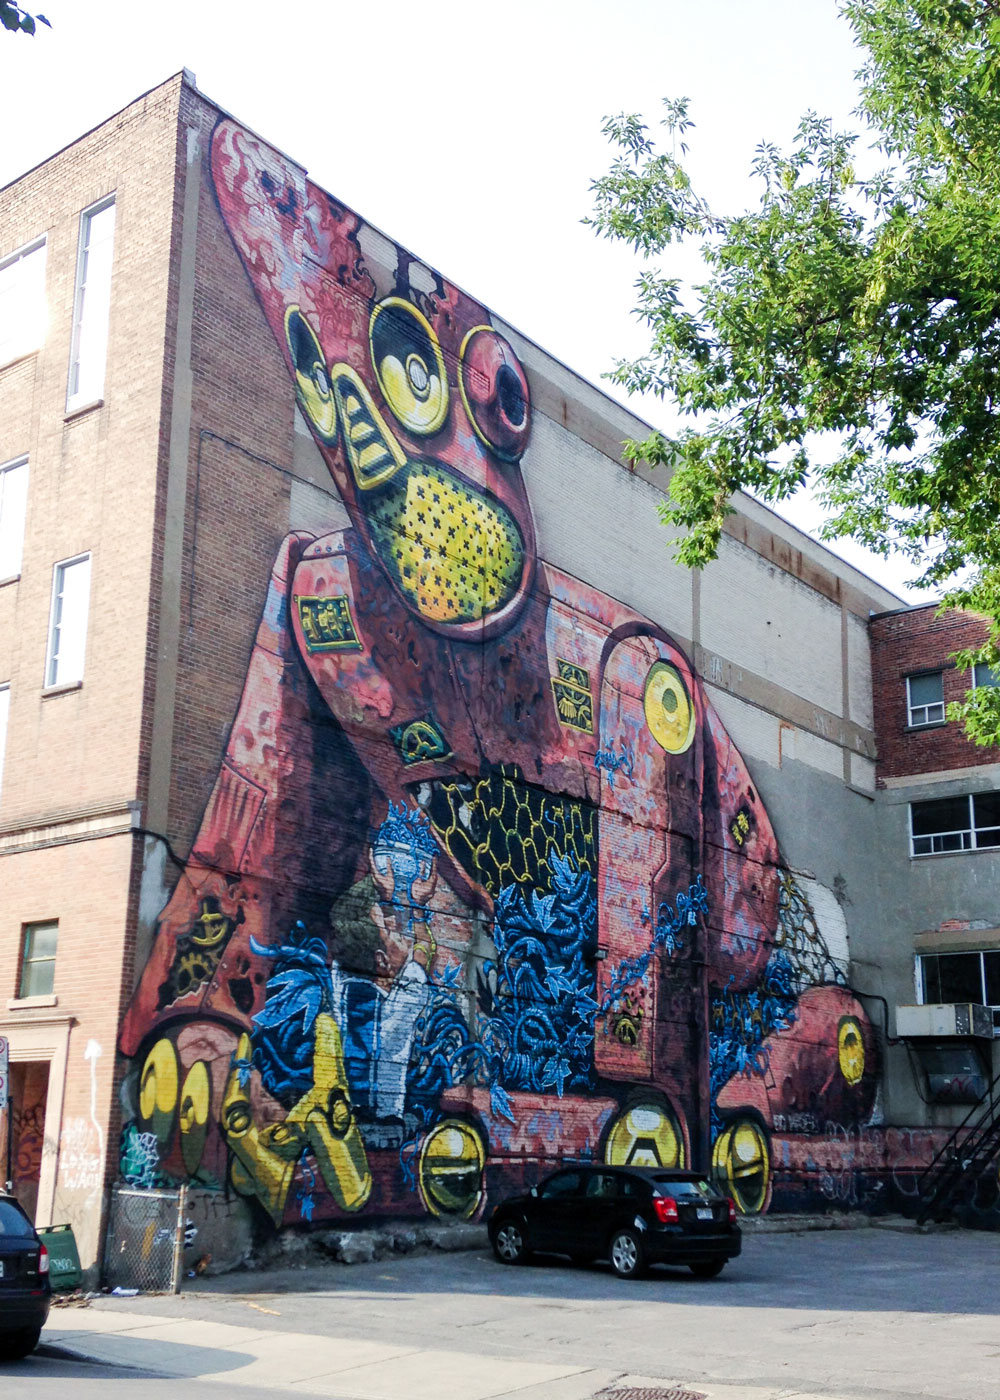 Montreal street art mural by Italian painter Pixel Pancho